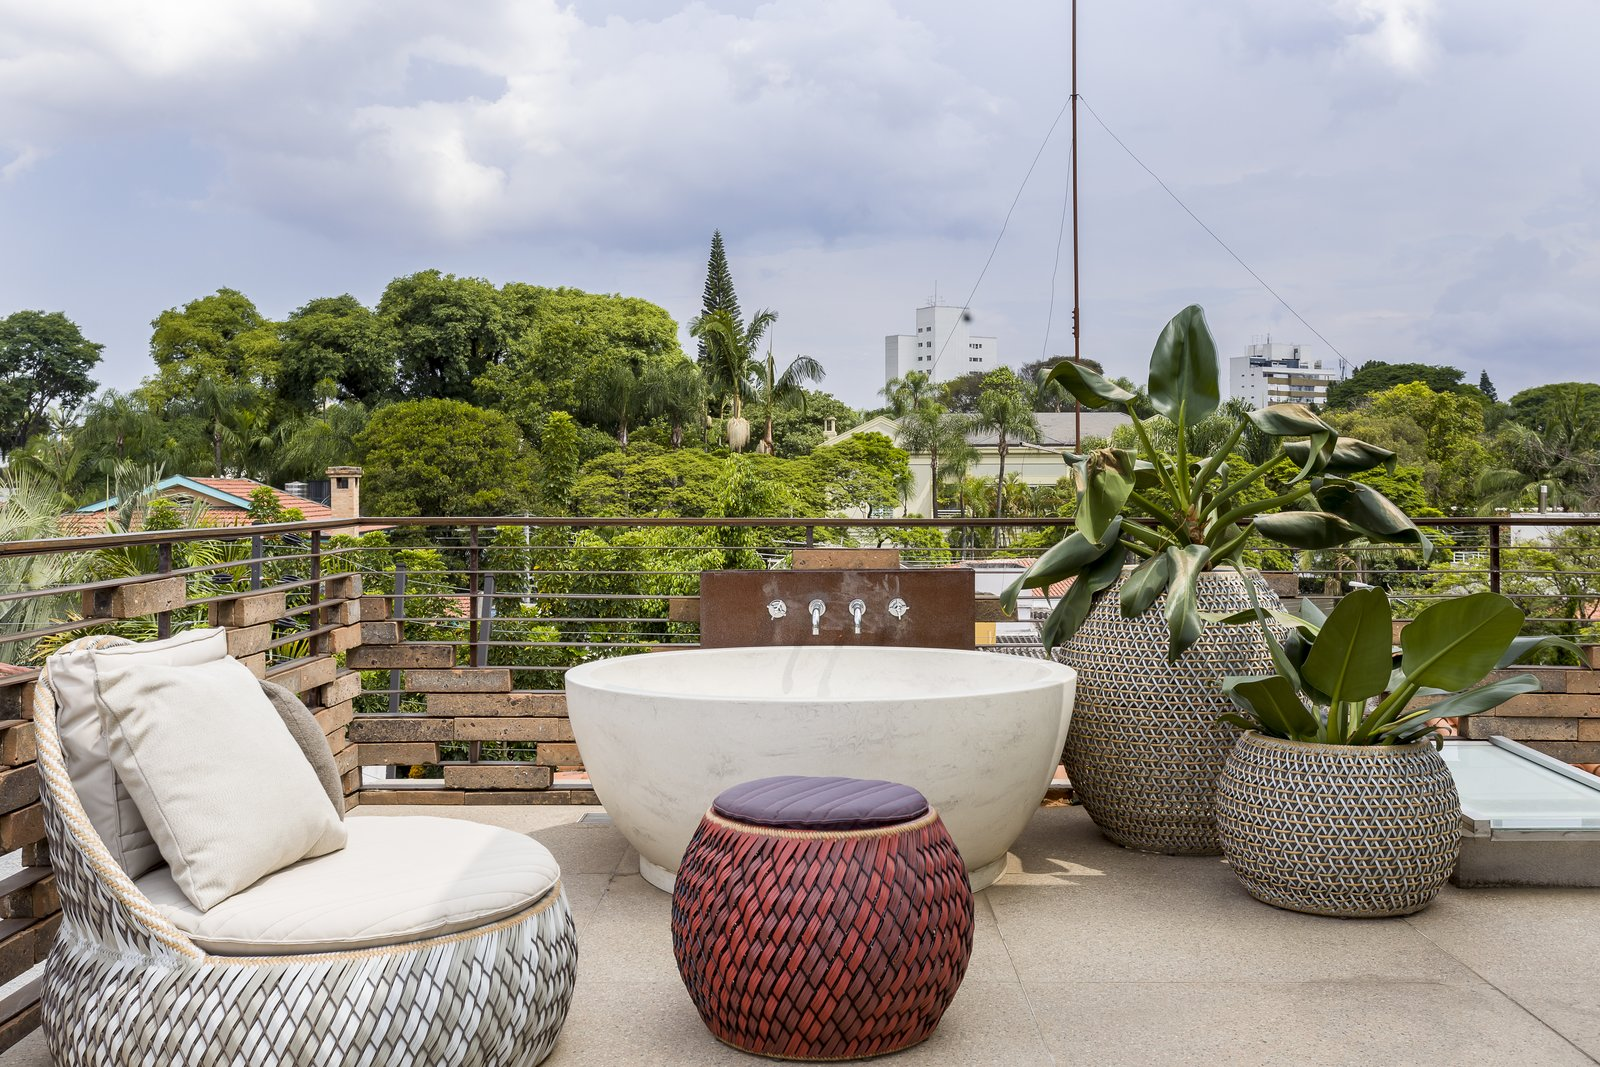 Outdoor, Large Patio, Porch, Deck, Rooftop, Horizontal Fences, Wall, Trees, and Hot Tub Pools, Tubs, Shower An upper-level media room.     Photo 12 of 13 in Lush Gardens Infuse Tropical Vibes in This Chic Brazilian Home